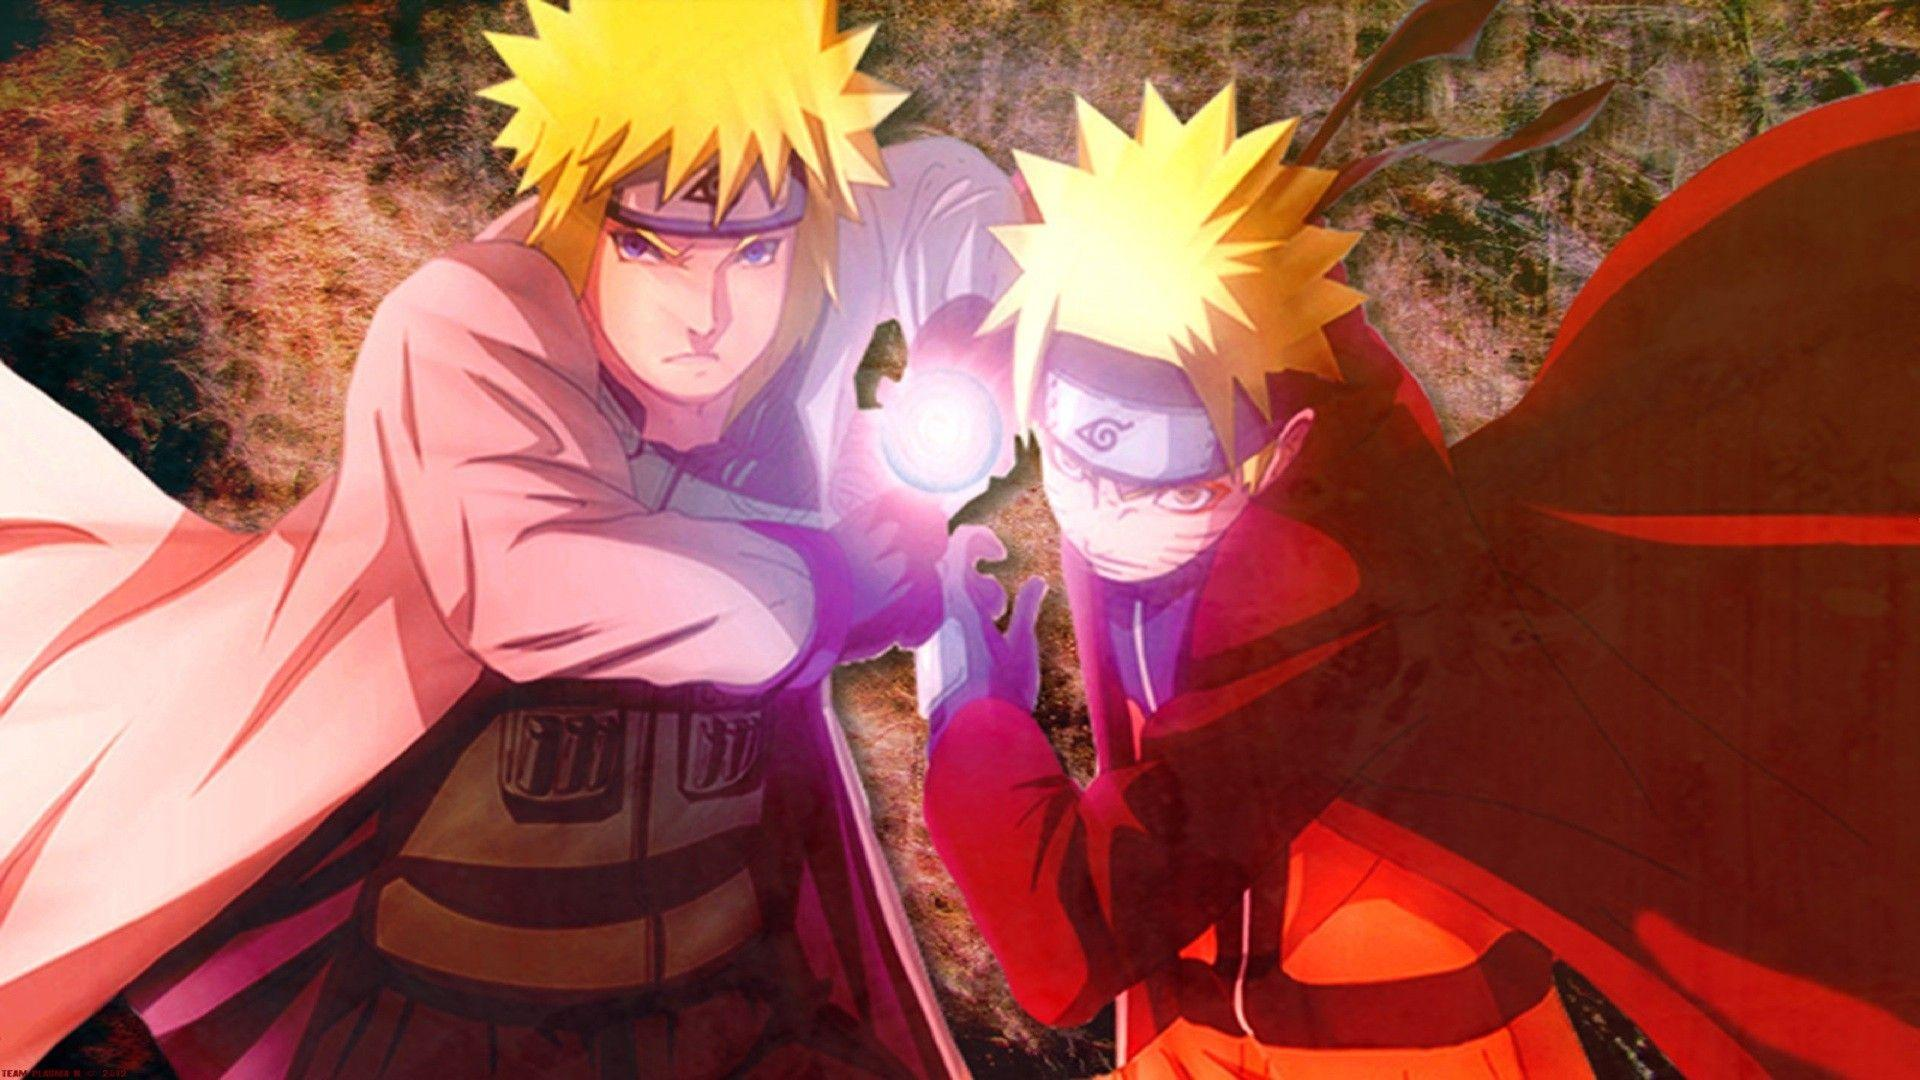 Uzumaki Naruto Sage Mode Wallpapers Hd Wallpaper Cave